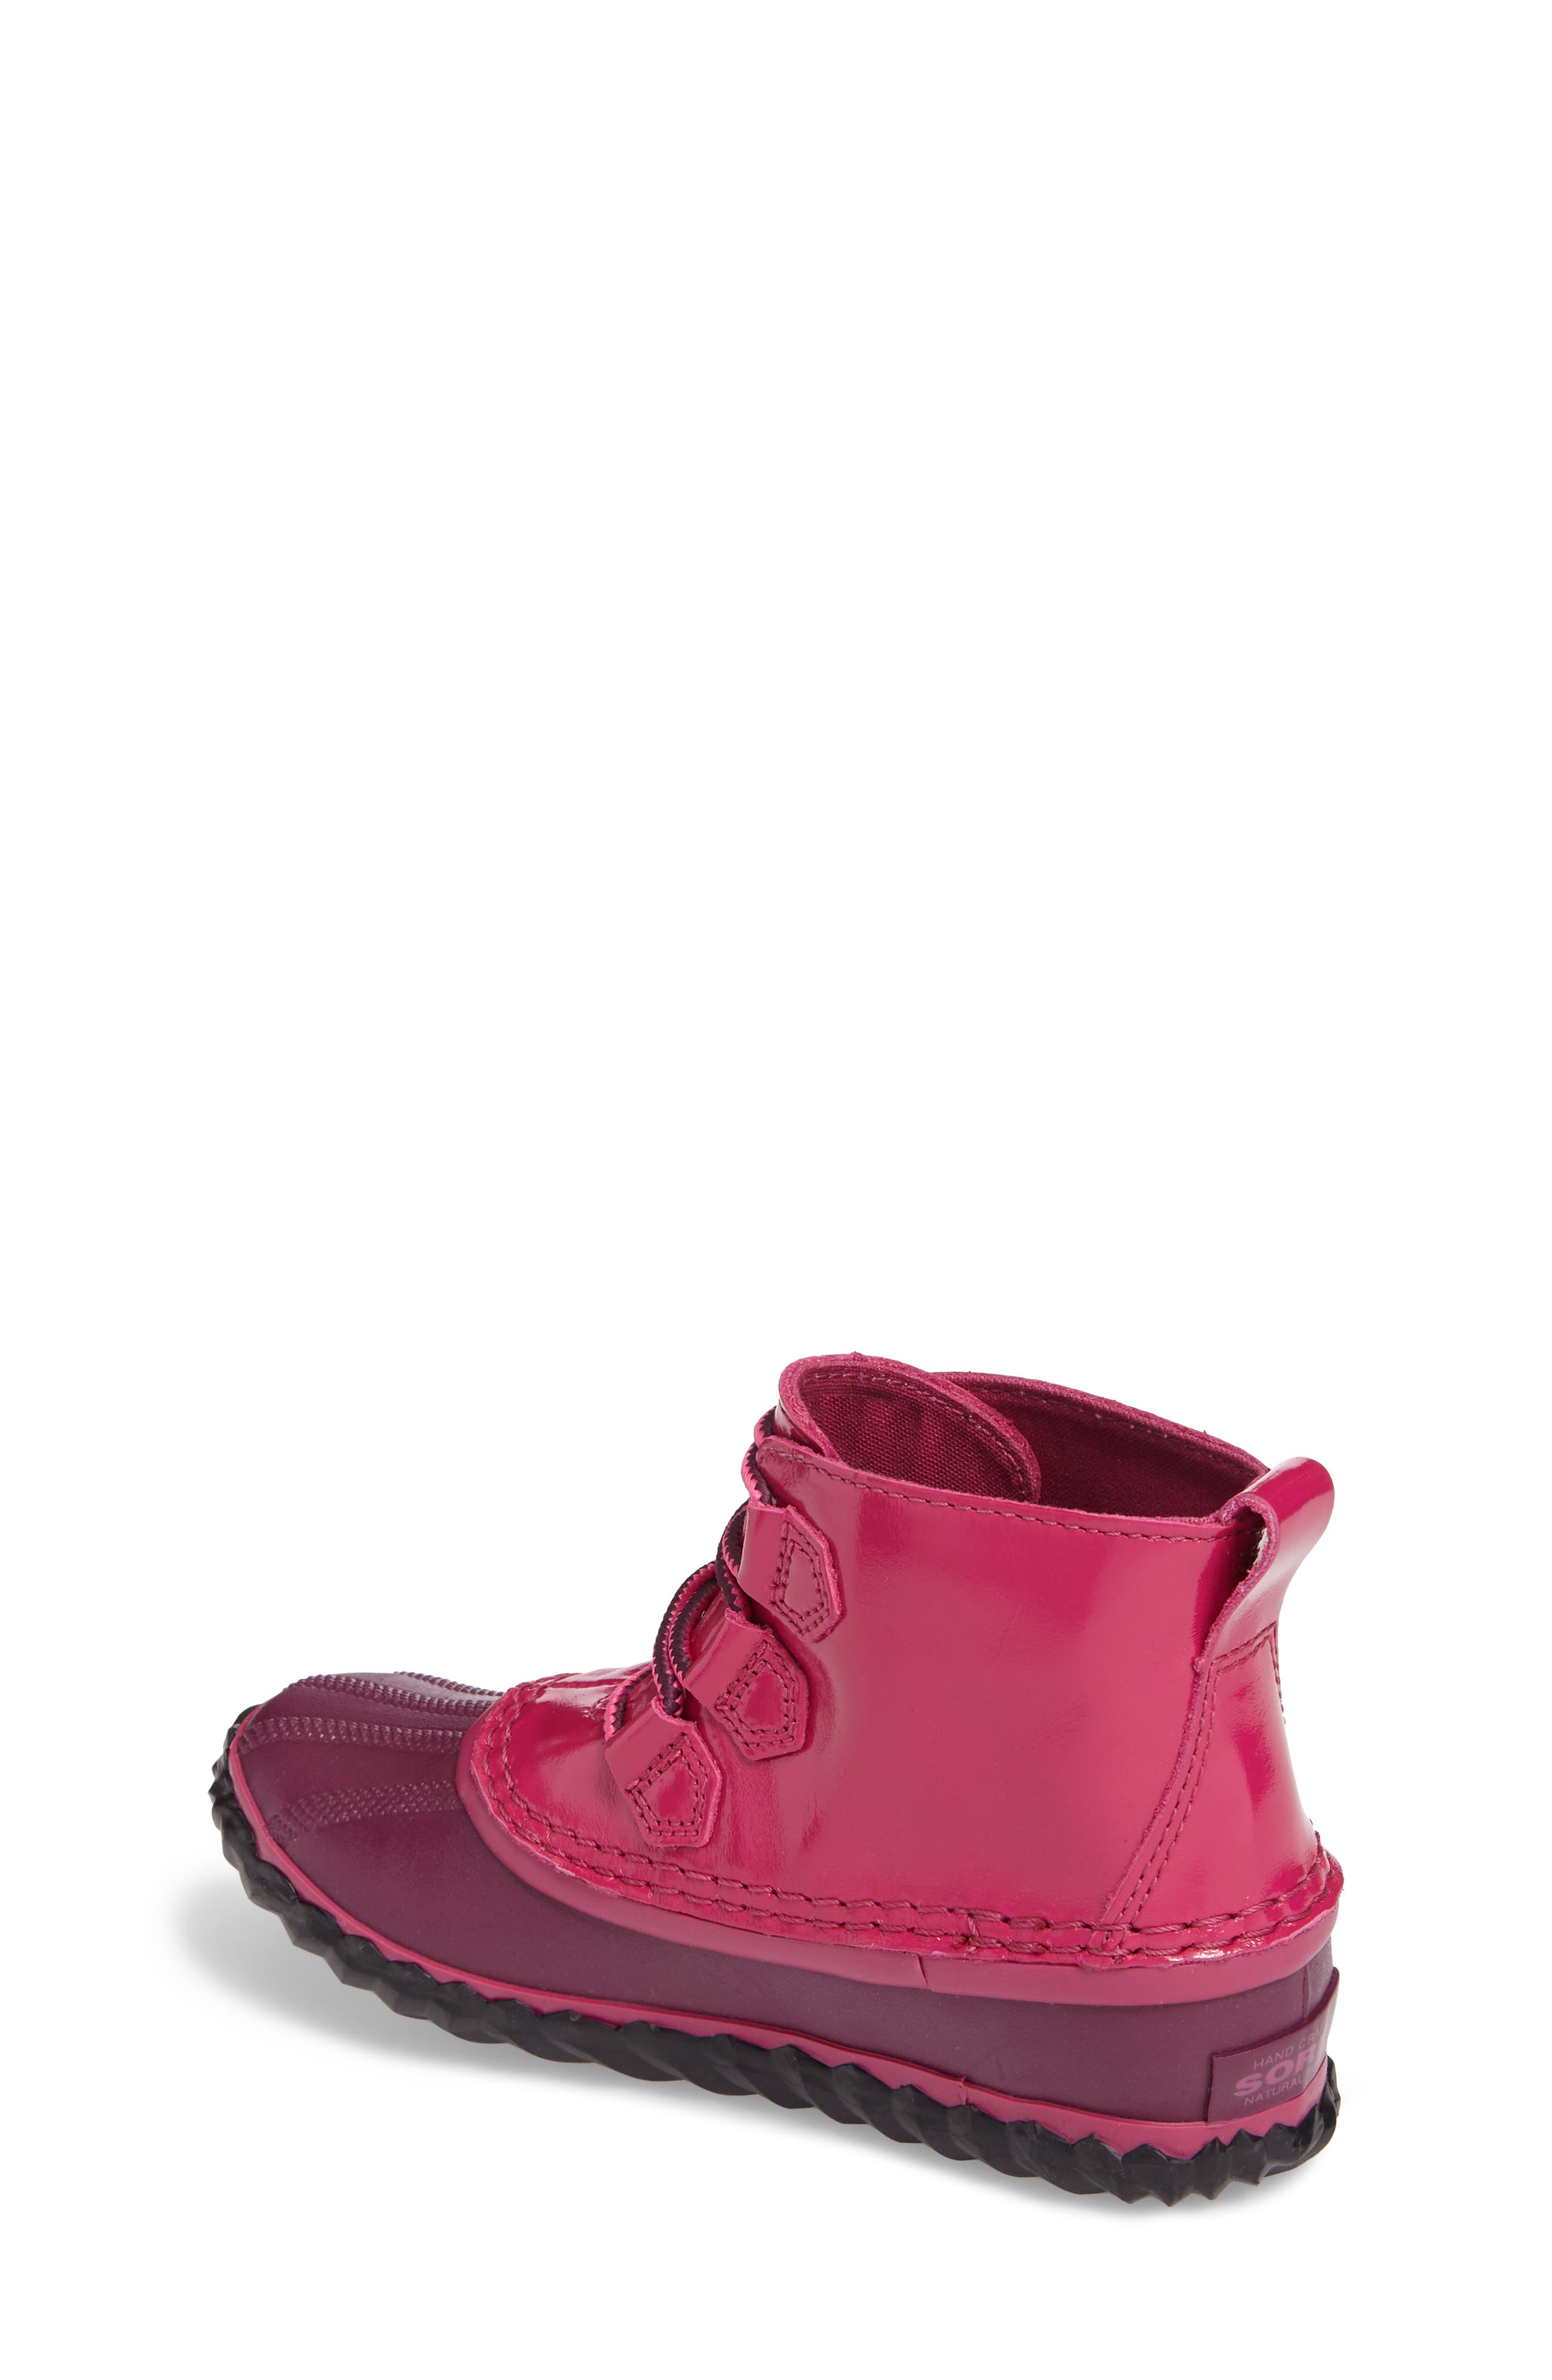 Out 'N About<sup>®</sup> Waterproof Boot,                             Alternate thumbnail 4, color,